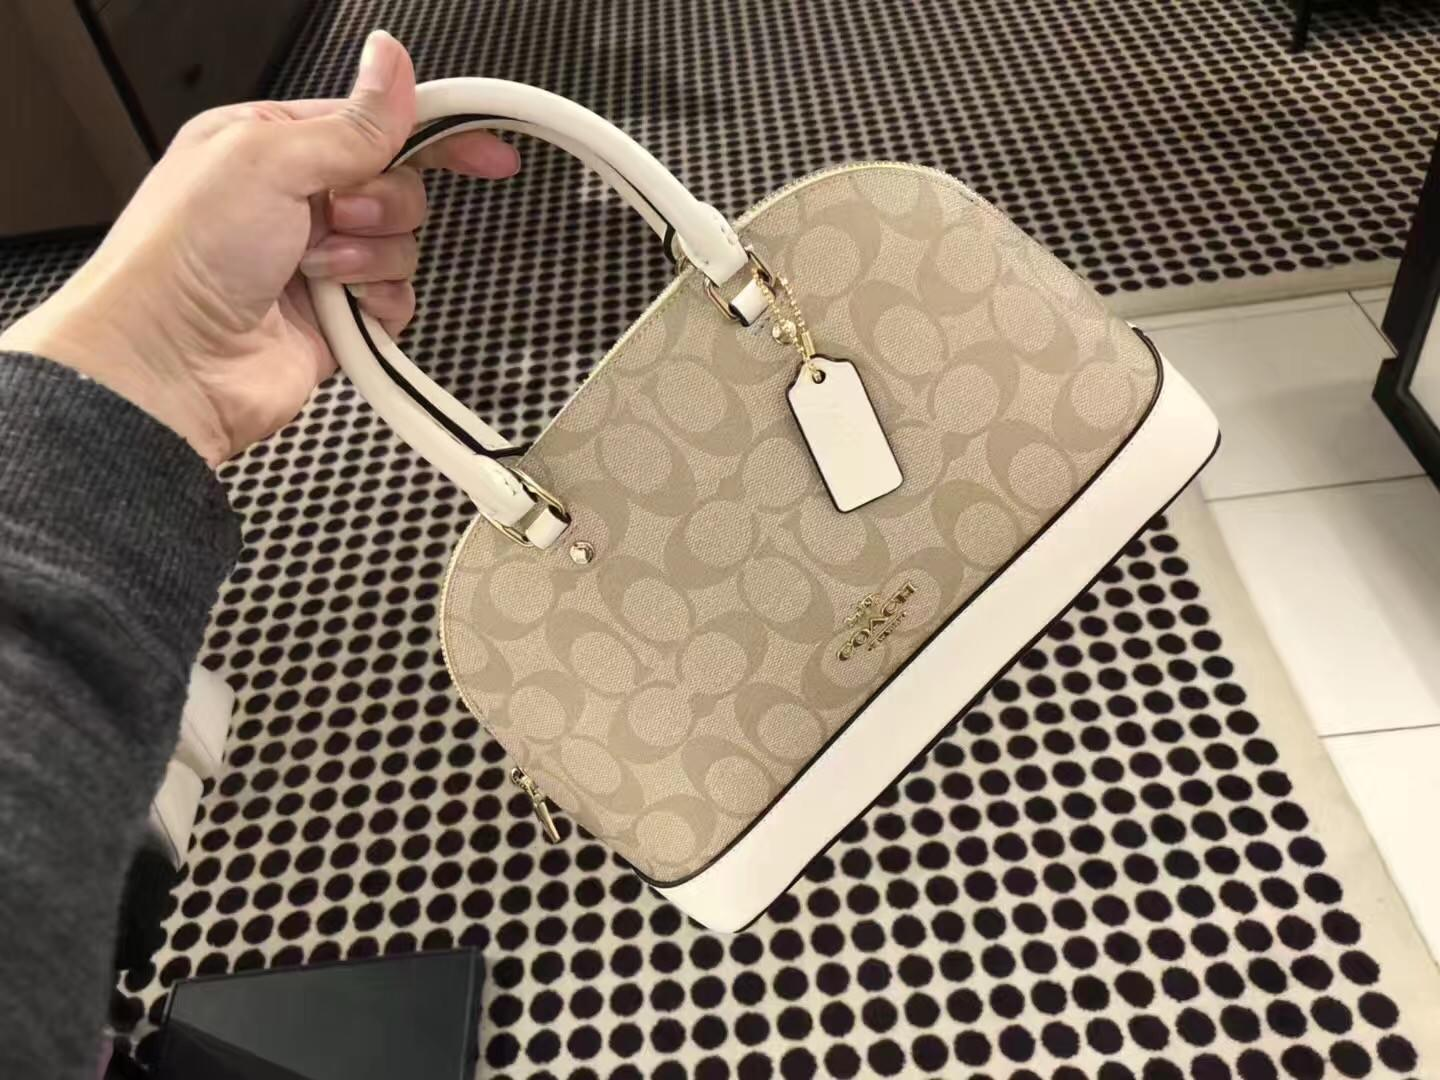 041be52cf5c7 57. 57. Previous. COACH F27583 MINI SIERRA SATCHEL in Crossgrain Leather  LIGHT KHAK women bag NEW · COACH F27583 MINI ...